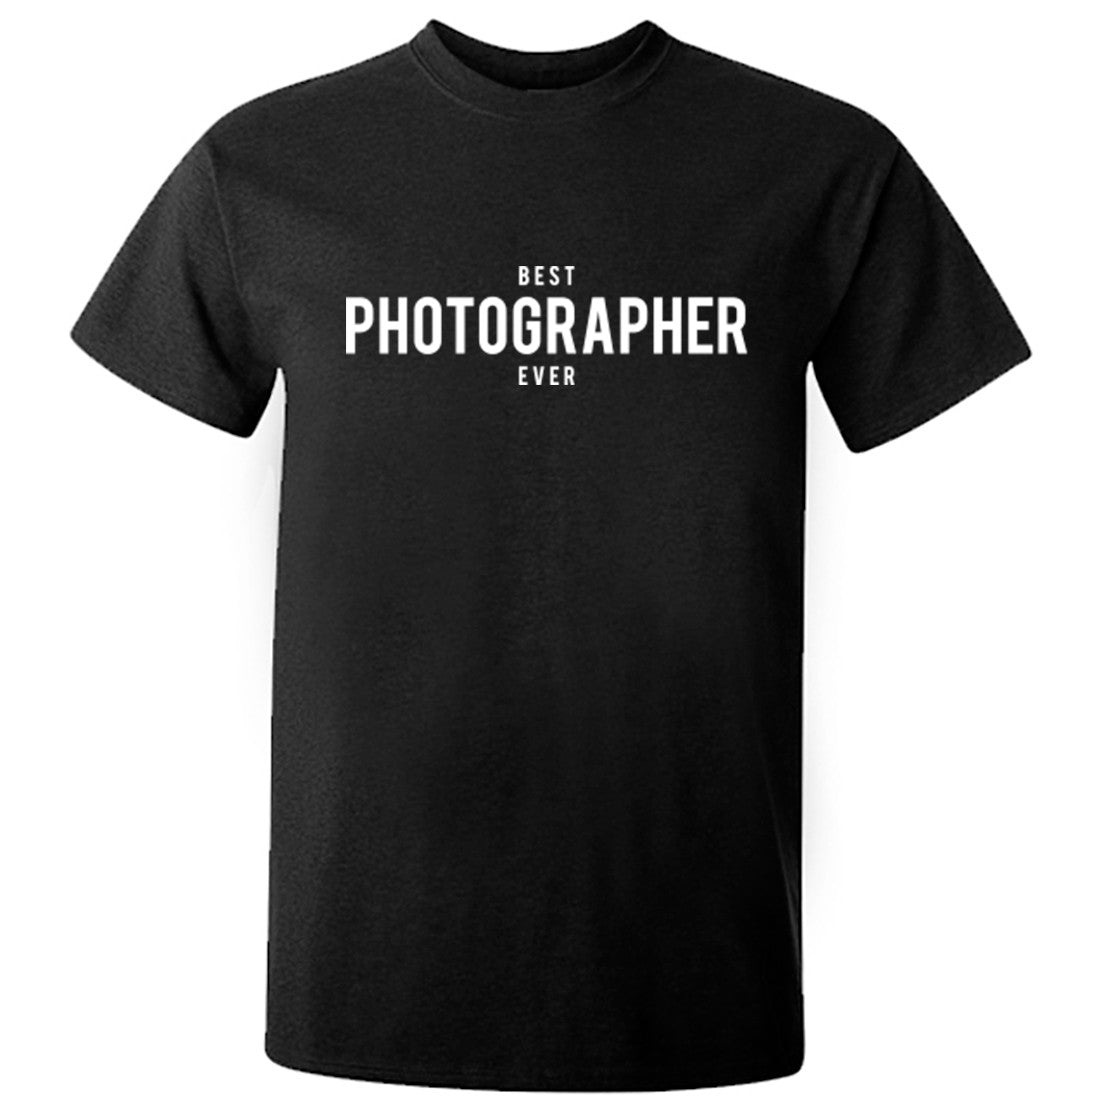 Best Photographer Ever Unisex Fit T-Shirt K1494